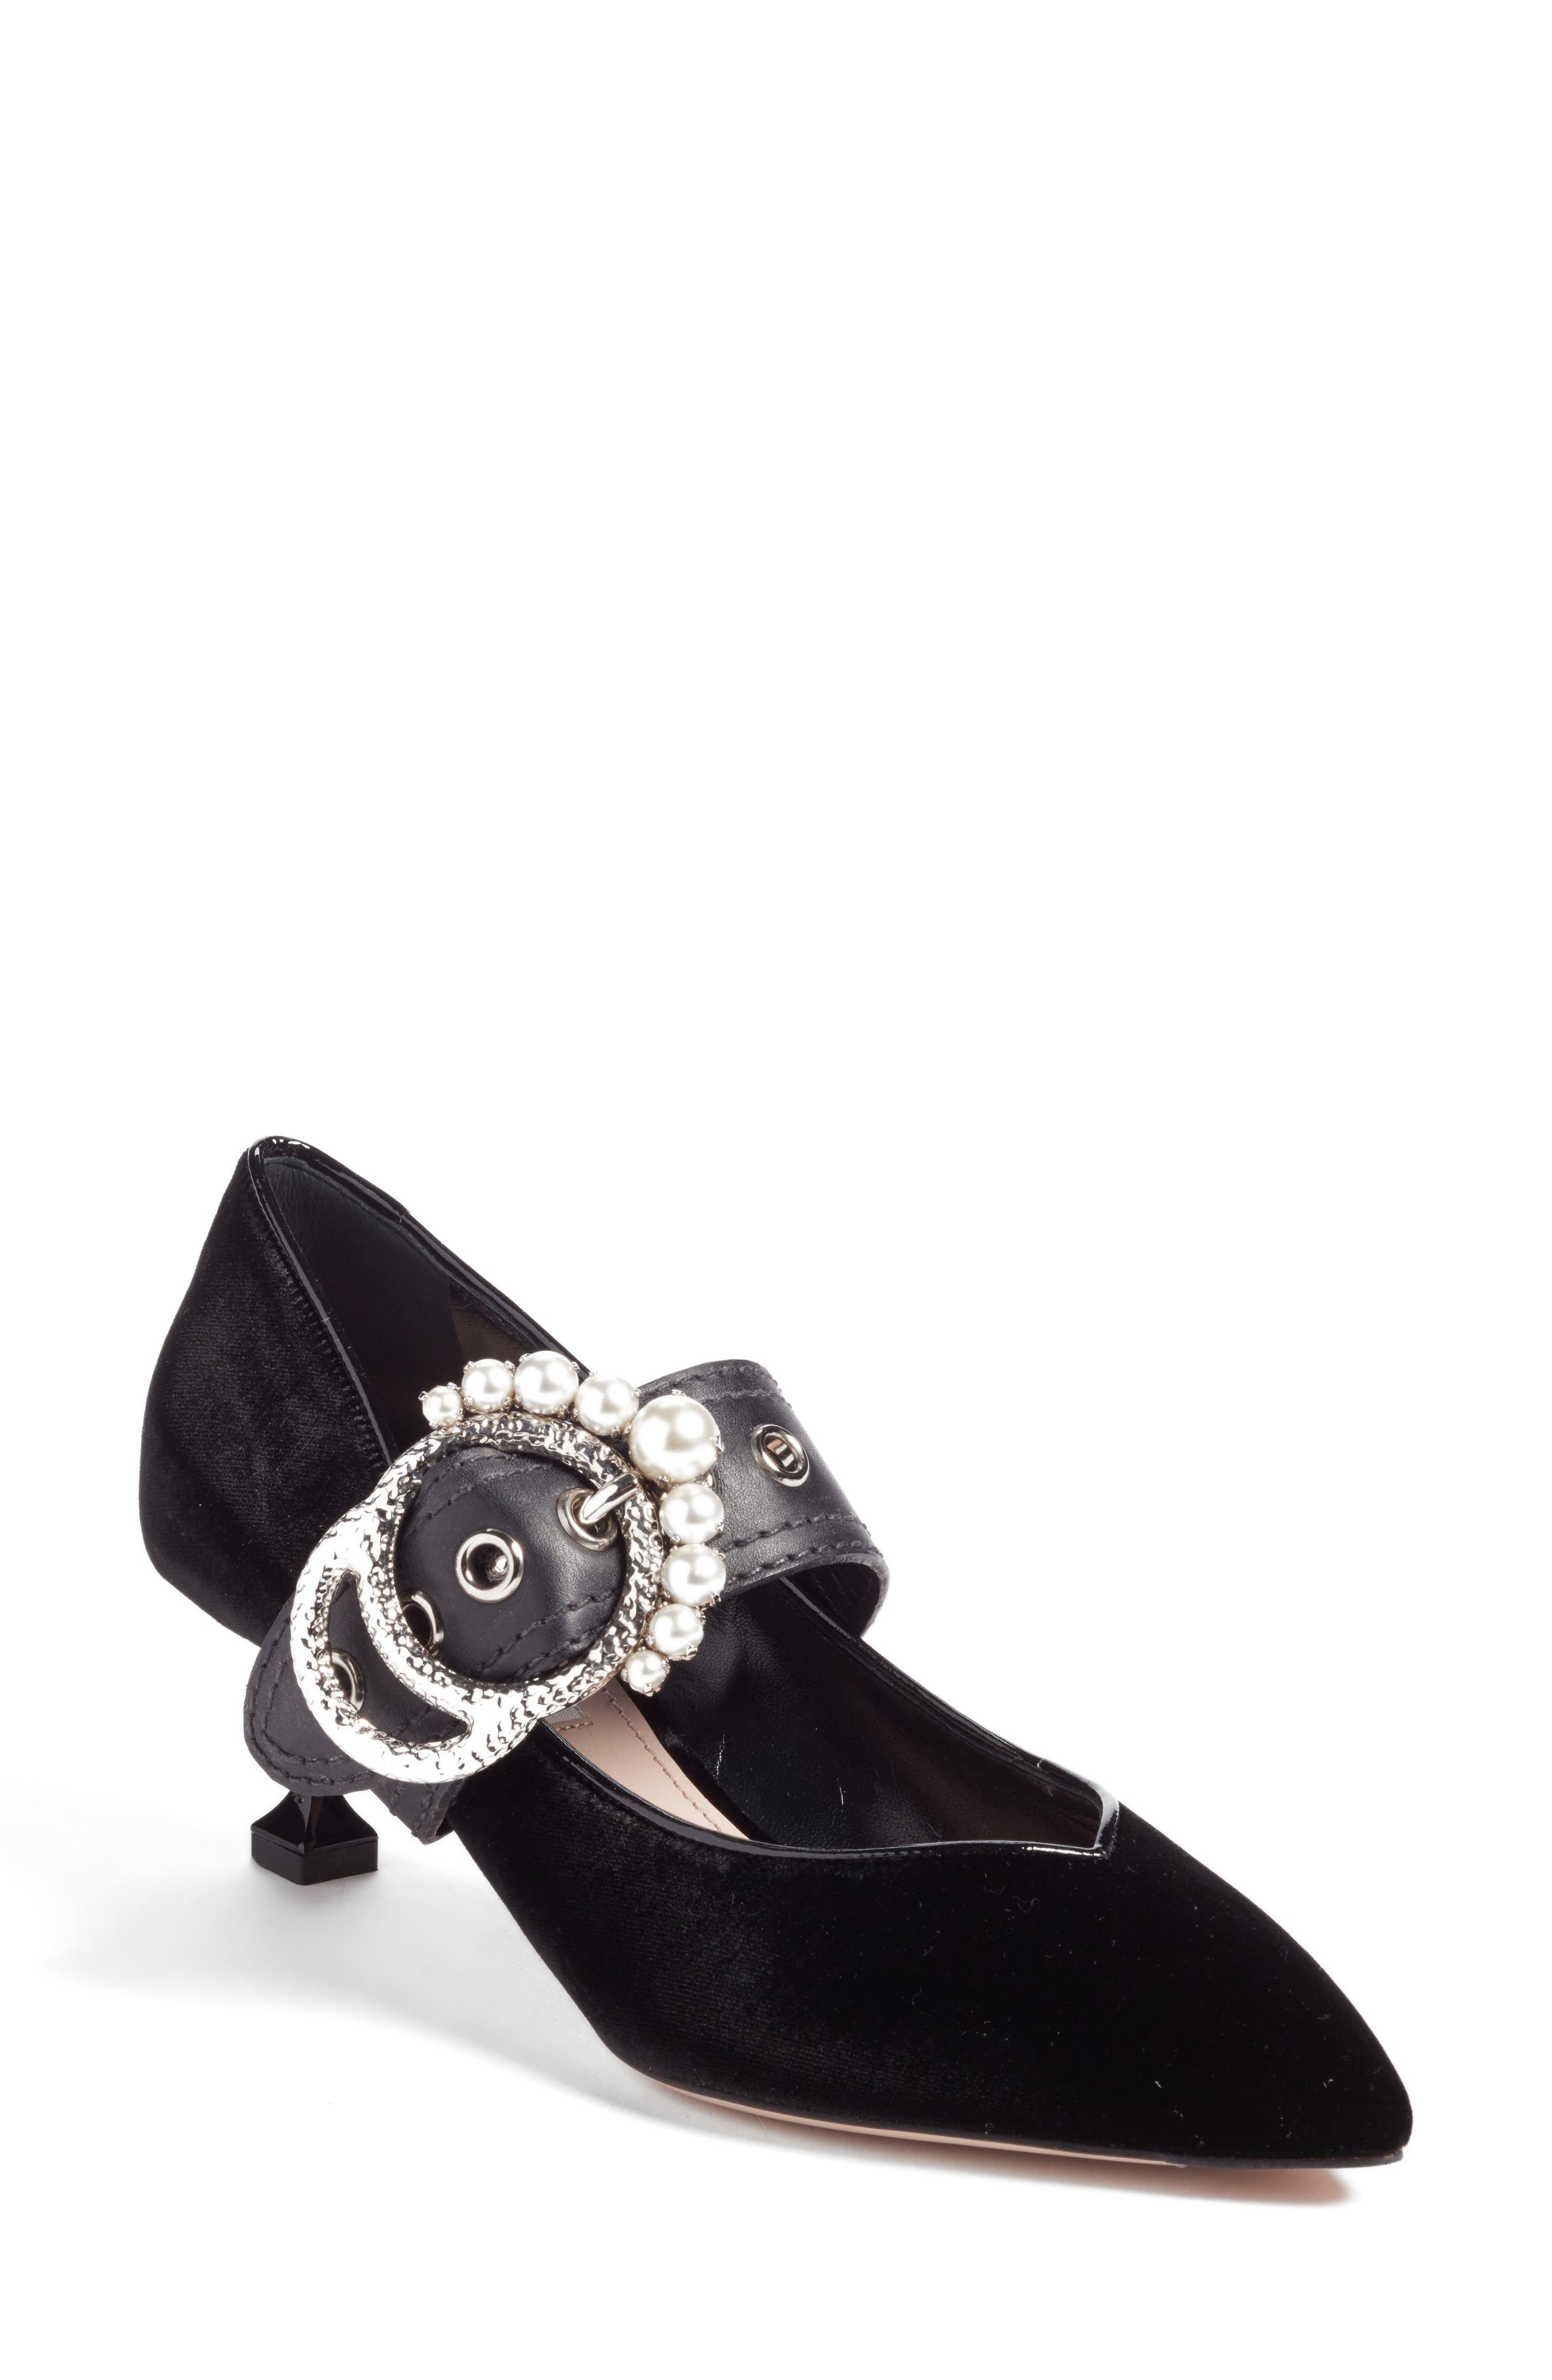 Miu Miu Embellished Buckle Pointy Toe Pump (Women)